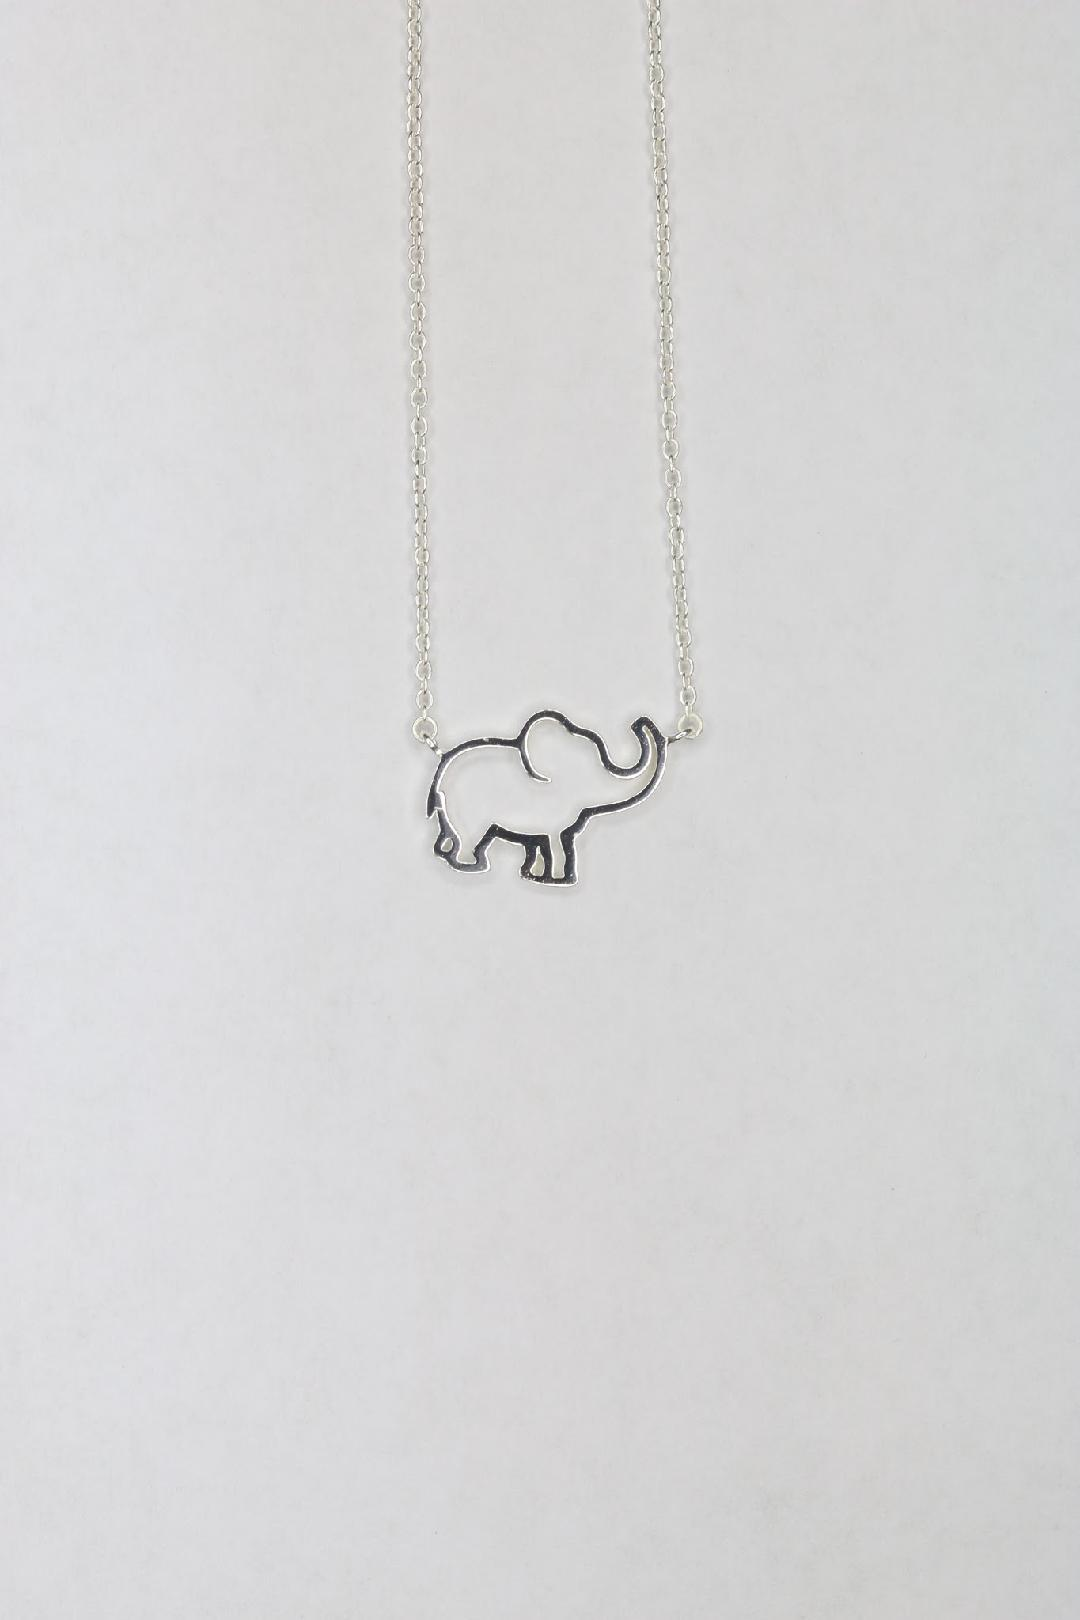 Sterling Elephant Necklace - #1 in Essence 00066